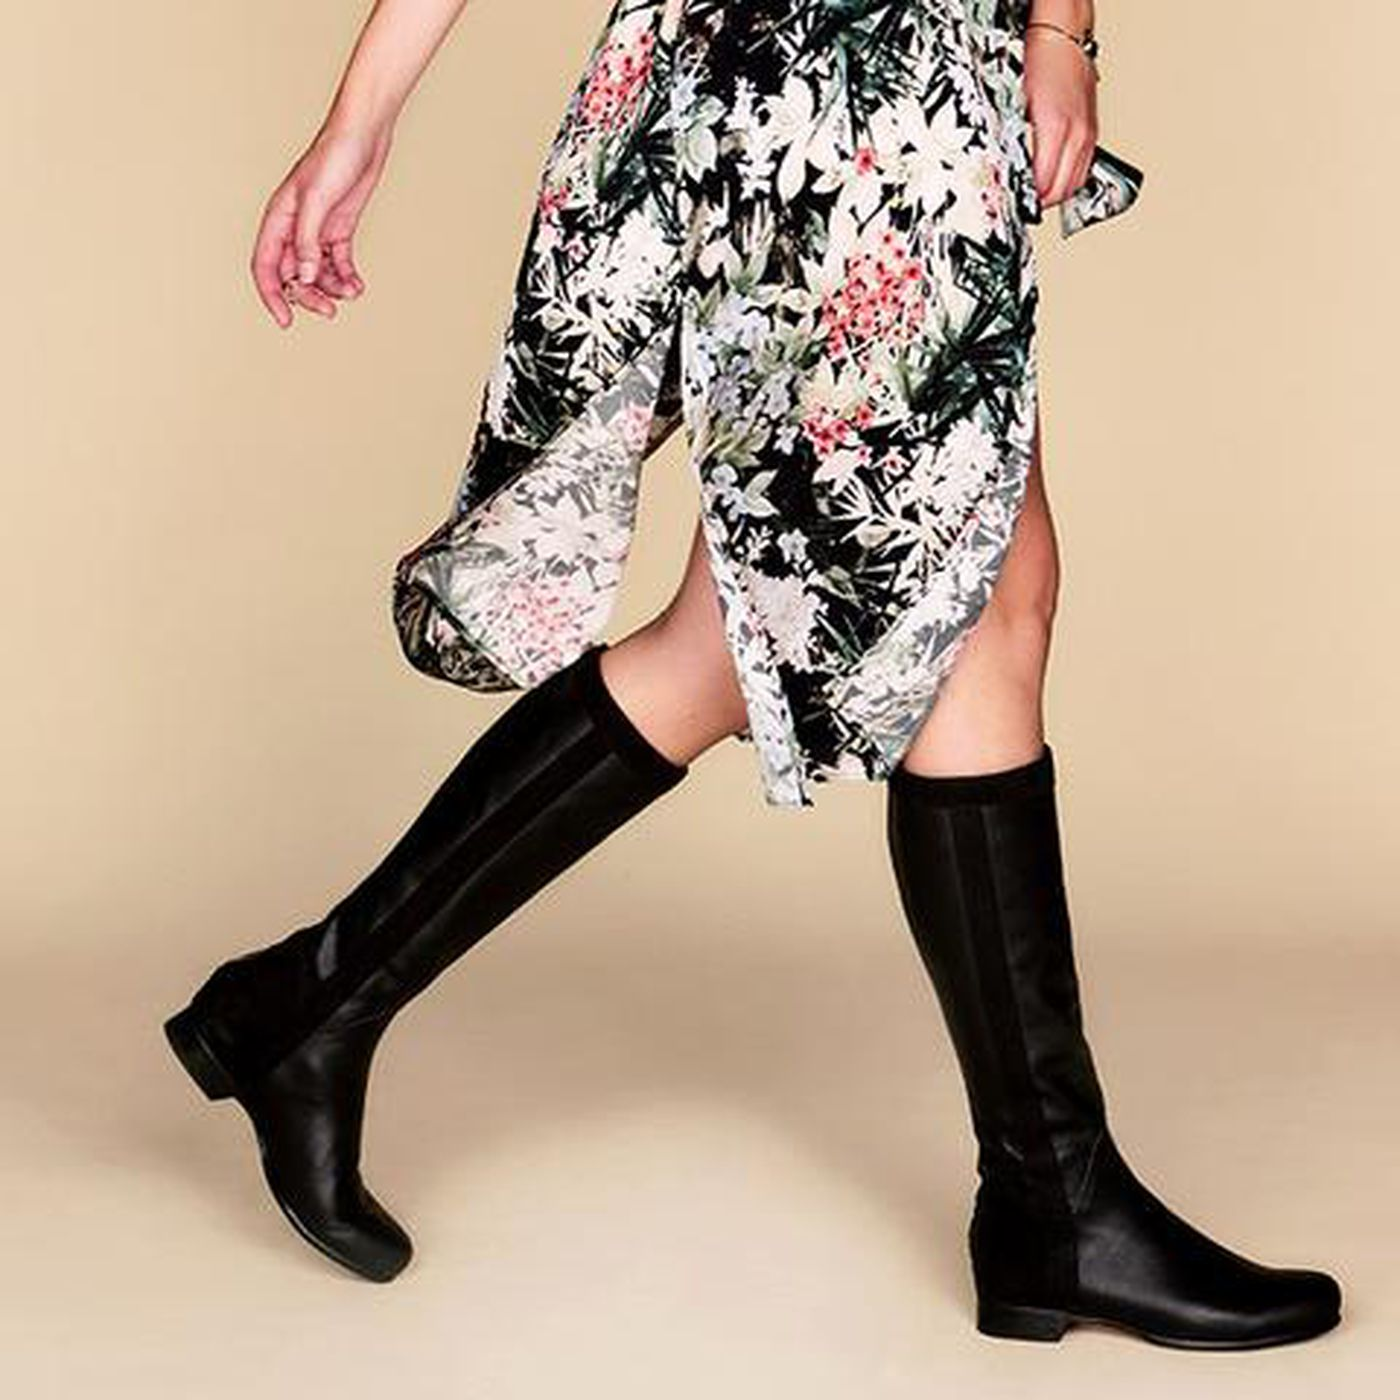 51b3234819c Where Can I Find: Tall Boots for Athletic Calves? - Racked